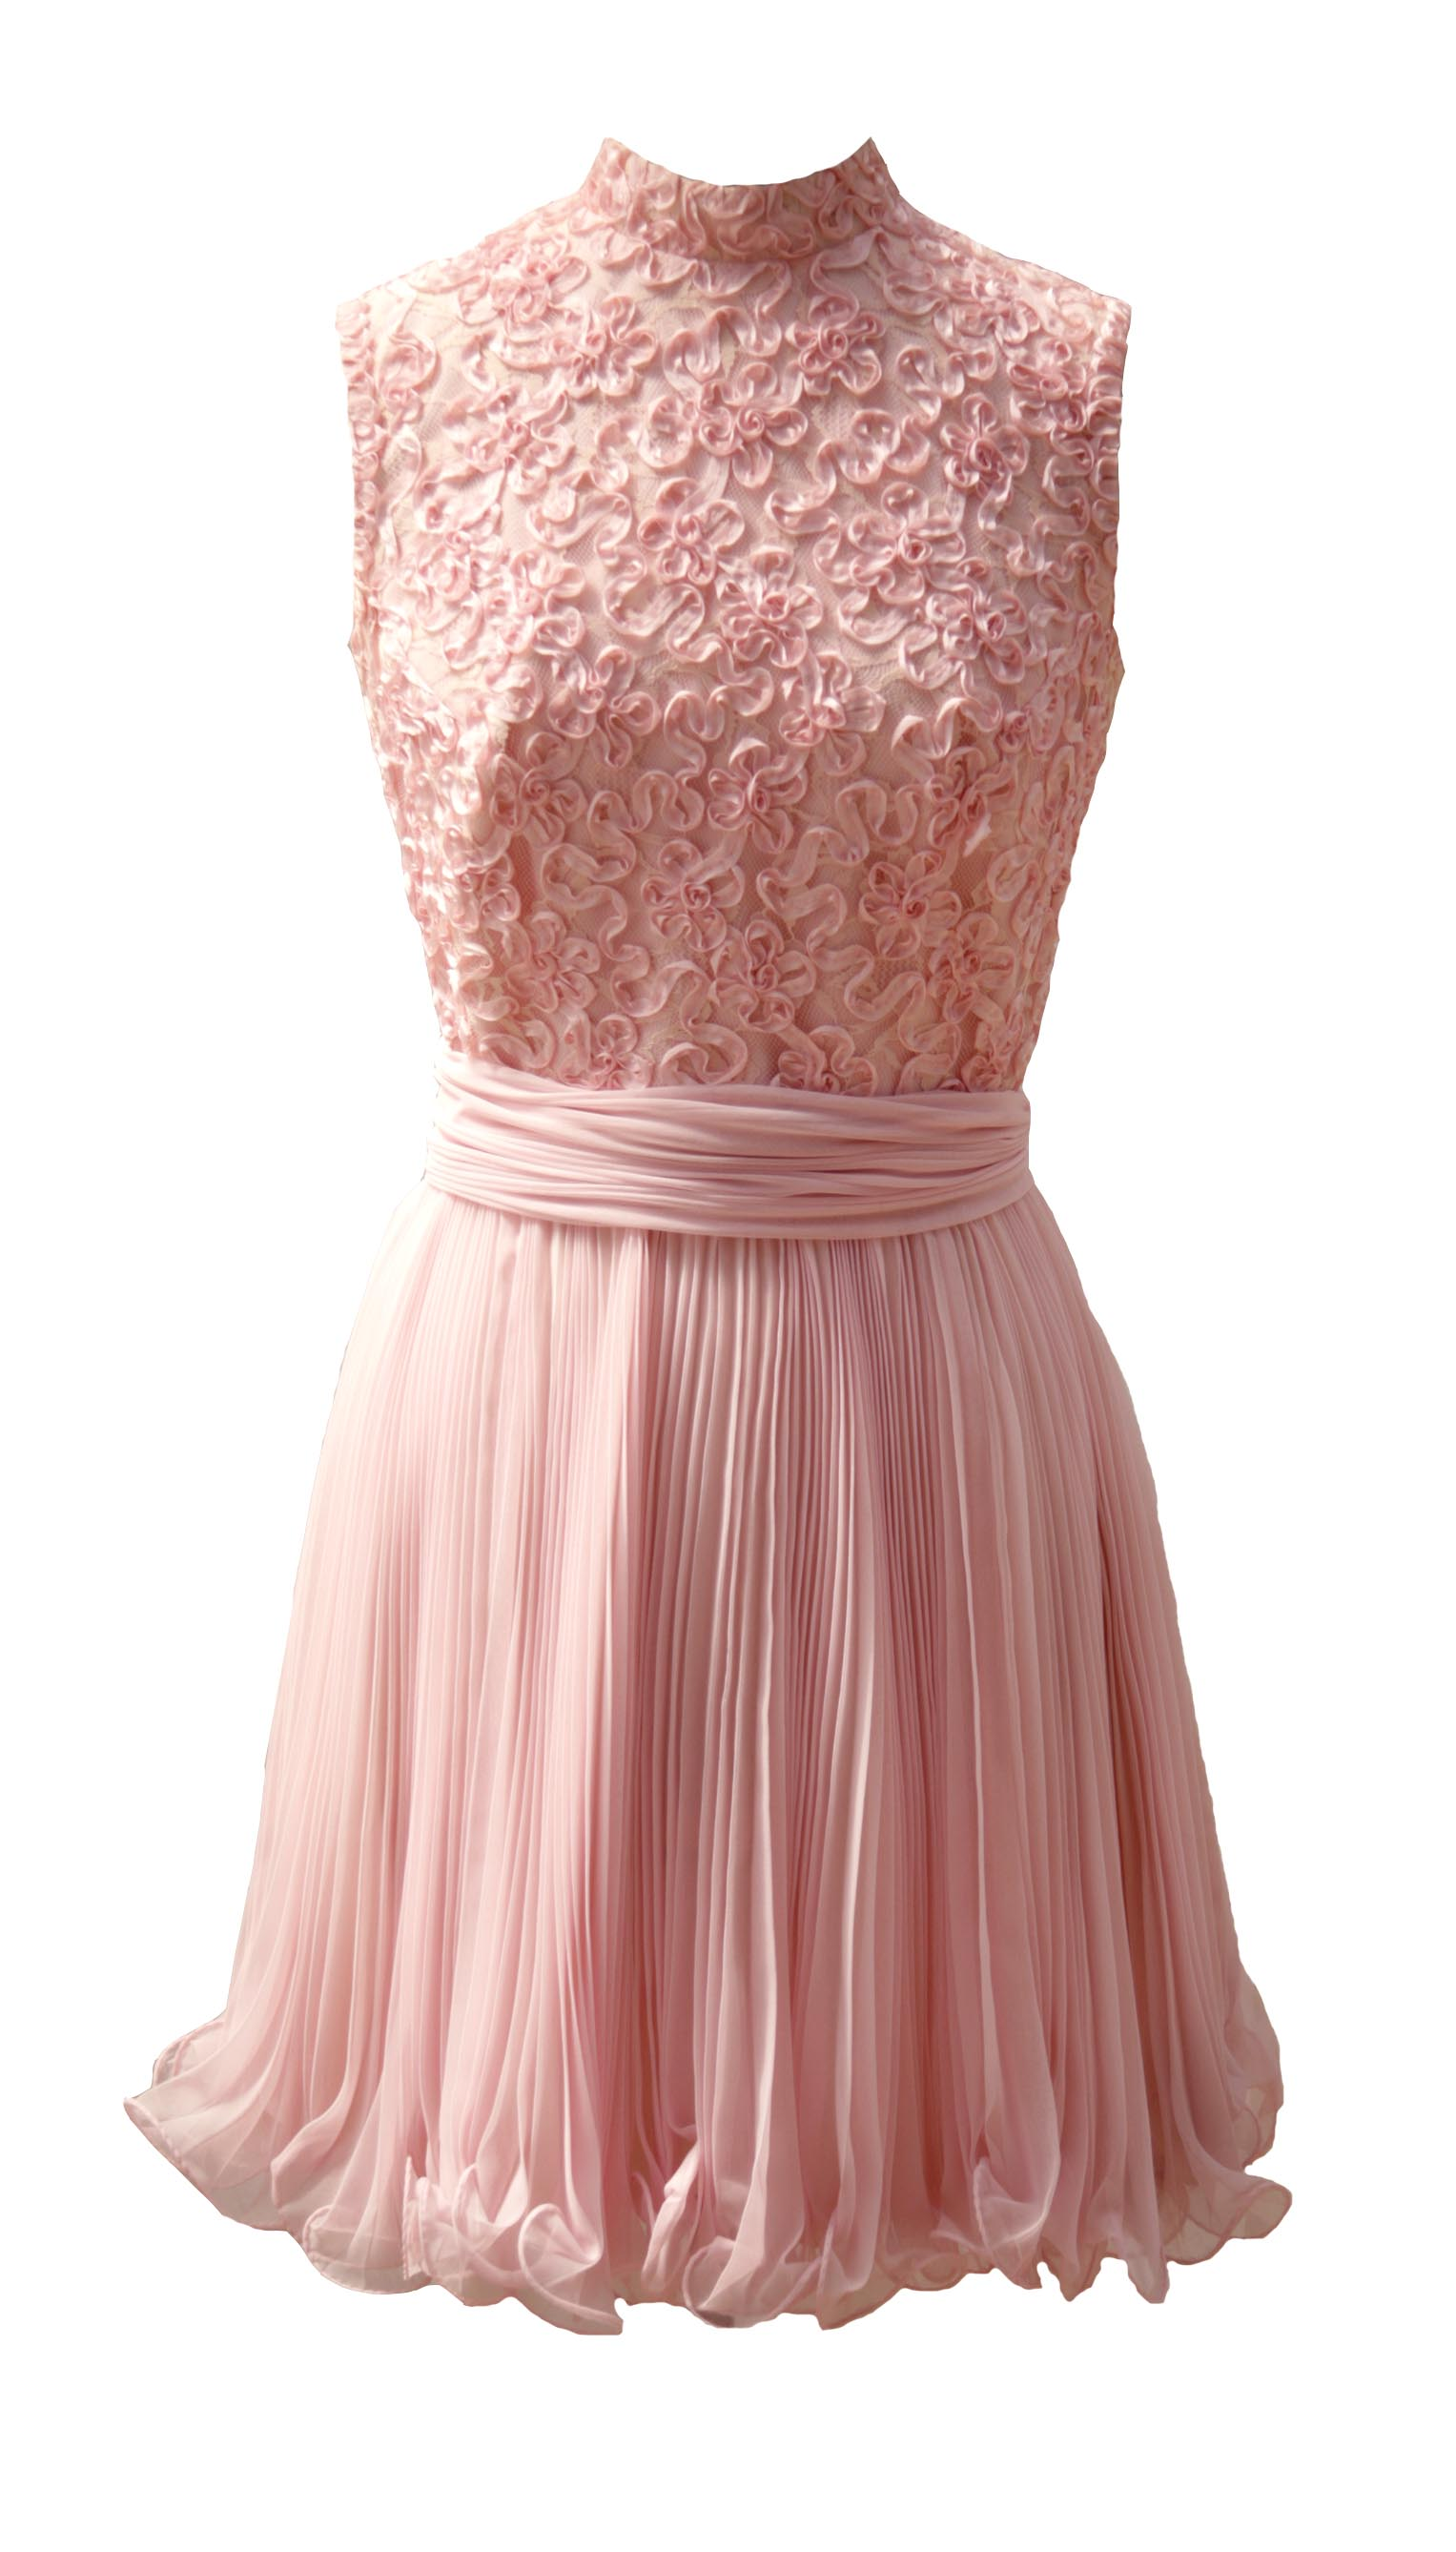 Dusty tulle rose 1960s cocktail dress wwwitsvintagedarlingcom